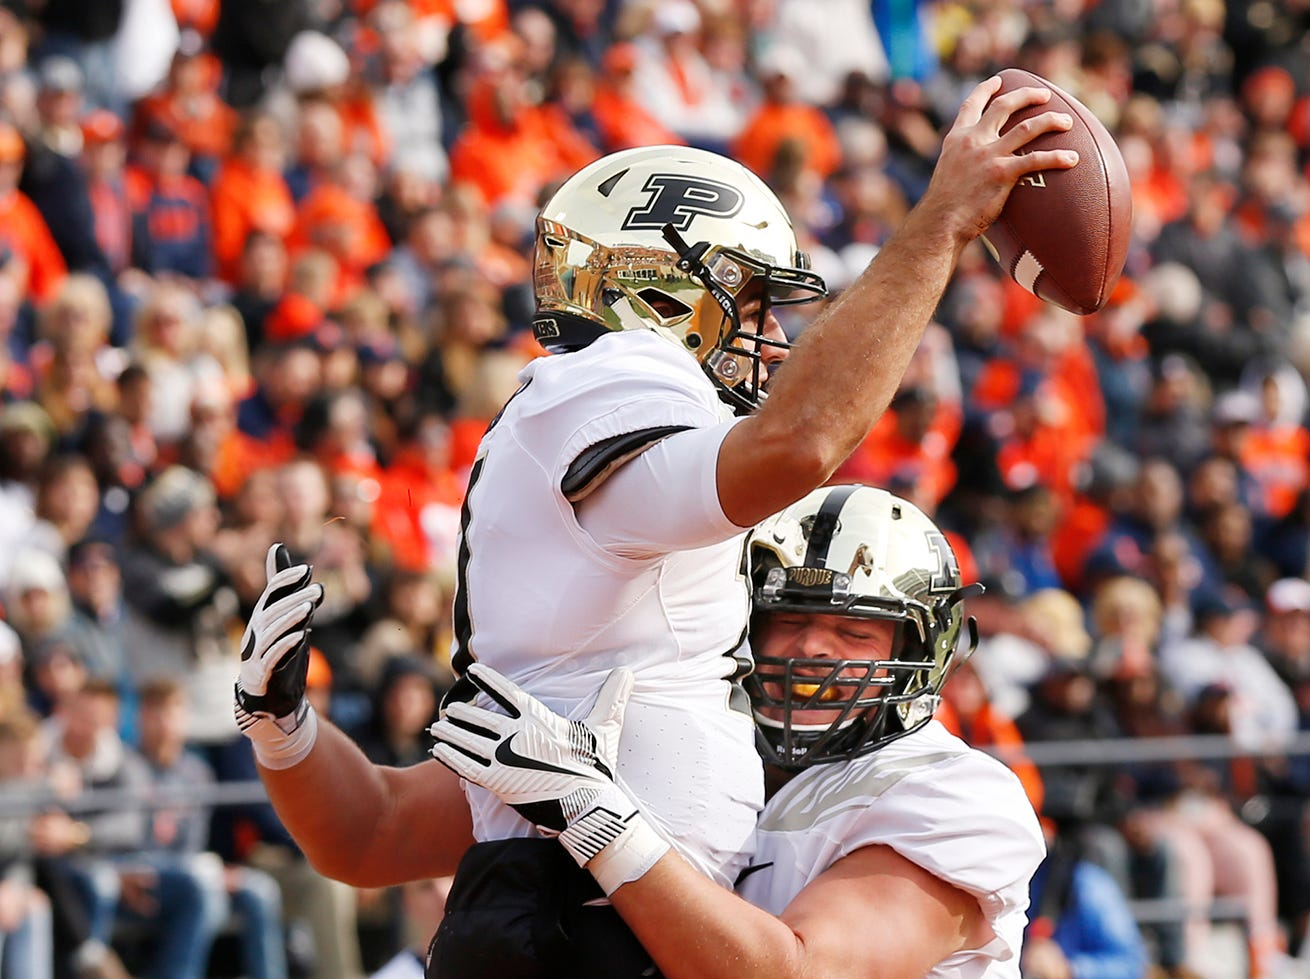 Purdue QB David Blough earns redemption, Boilermakers gain momentum with Ohio State next